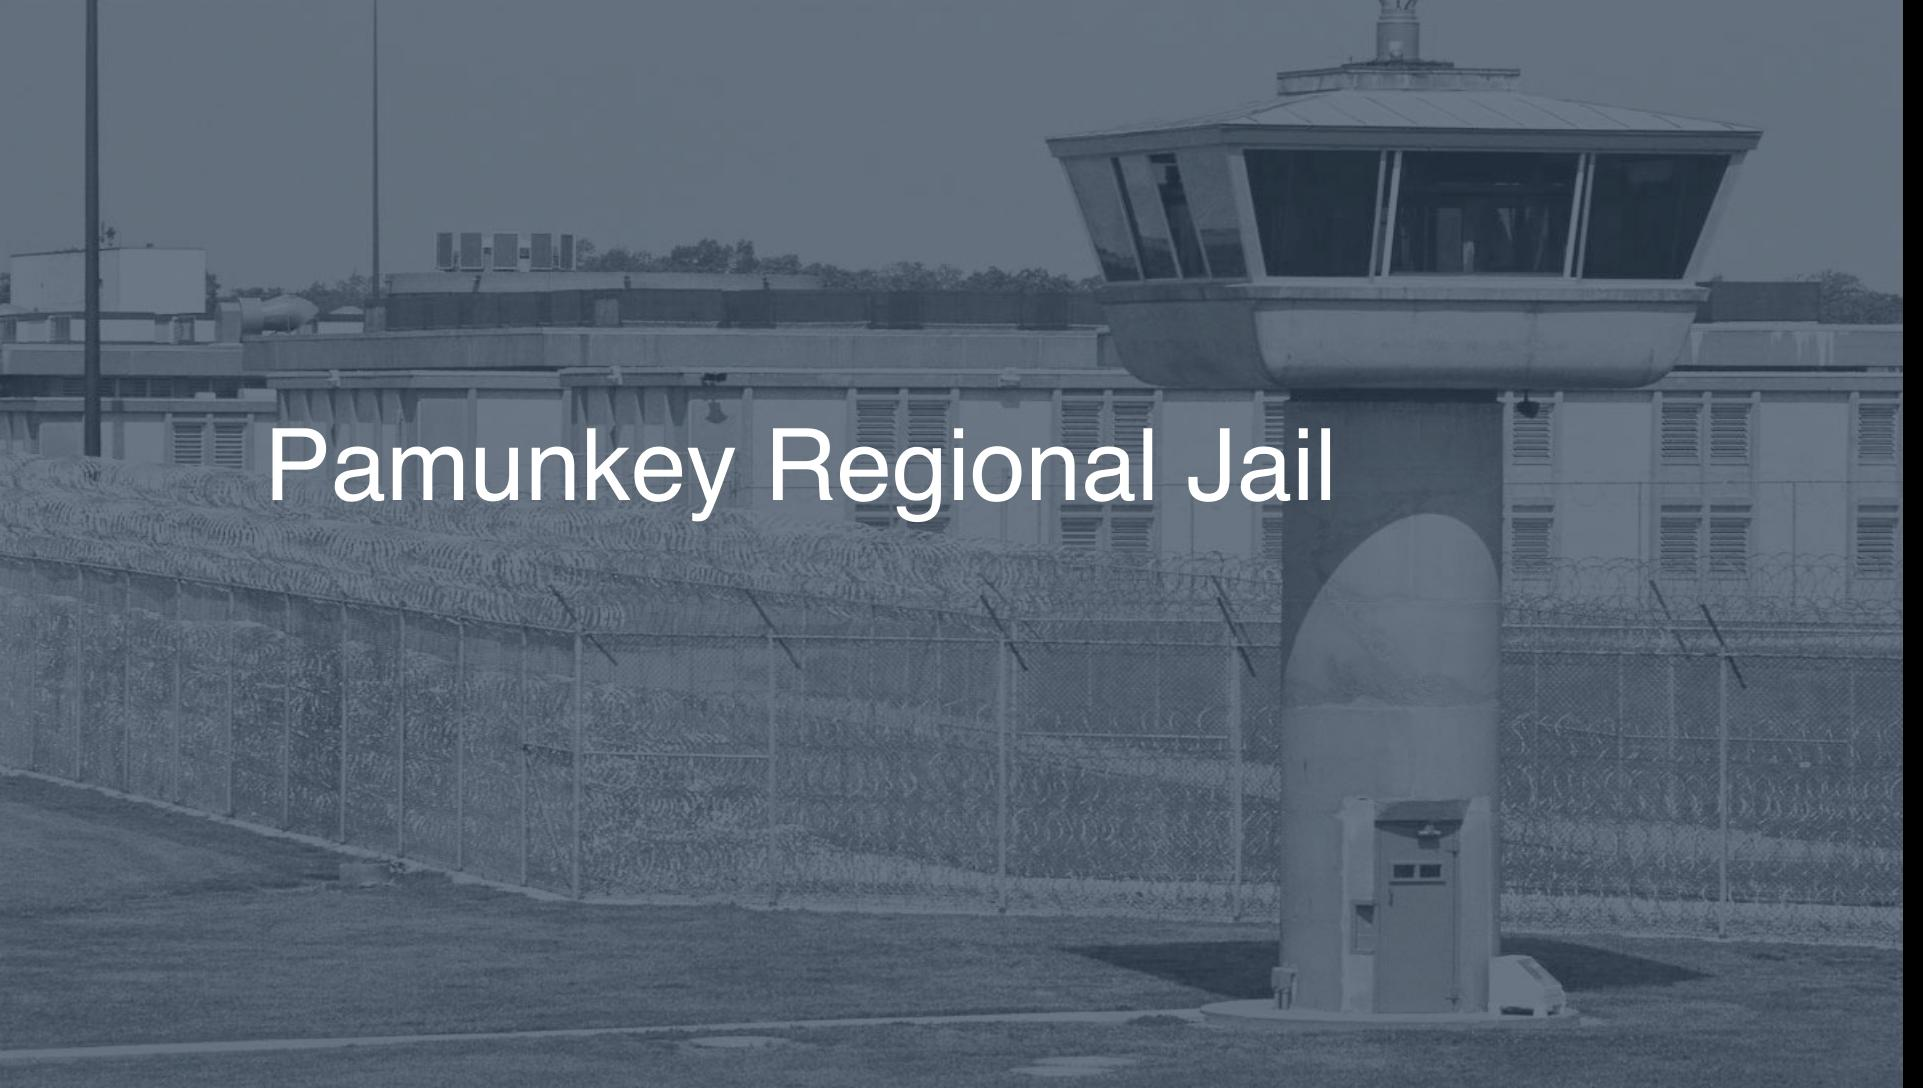 Pamunkey Regional Jail   Pigeonly - Inmate Search, Locate